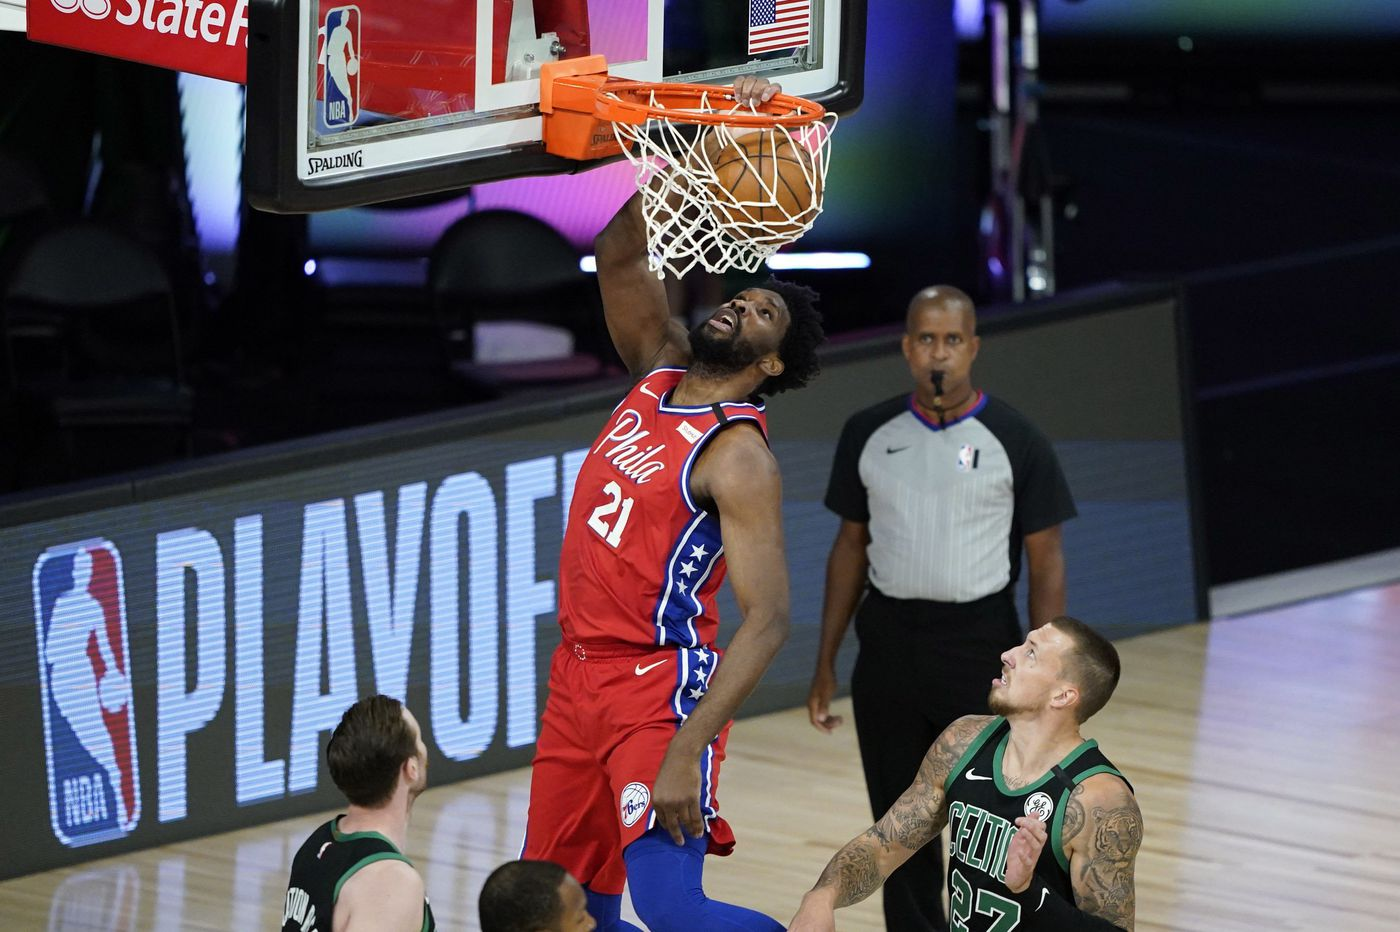 Sixers coach Brett Brown clearly sees the need to feed Joel Embiid against Boston Celtics